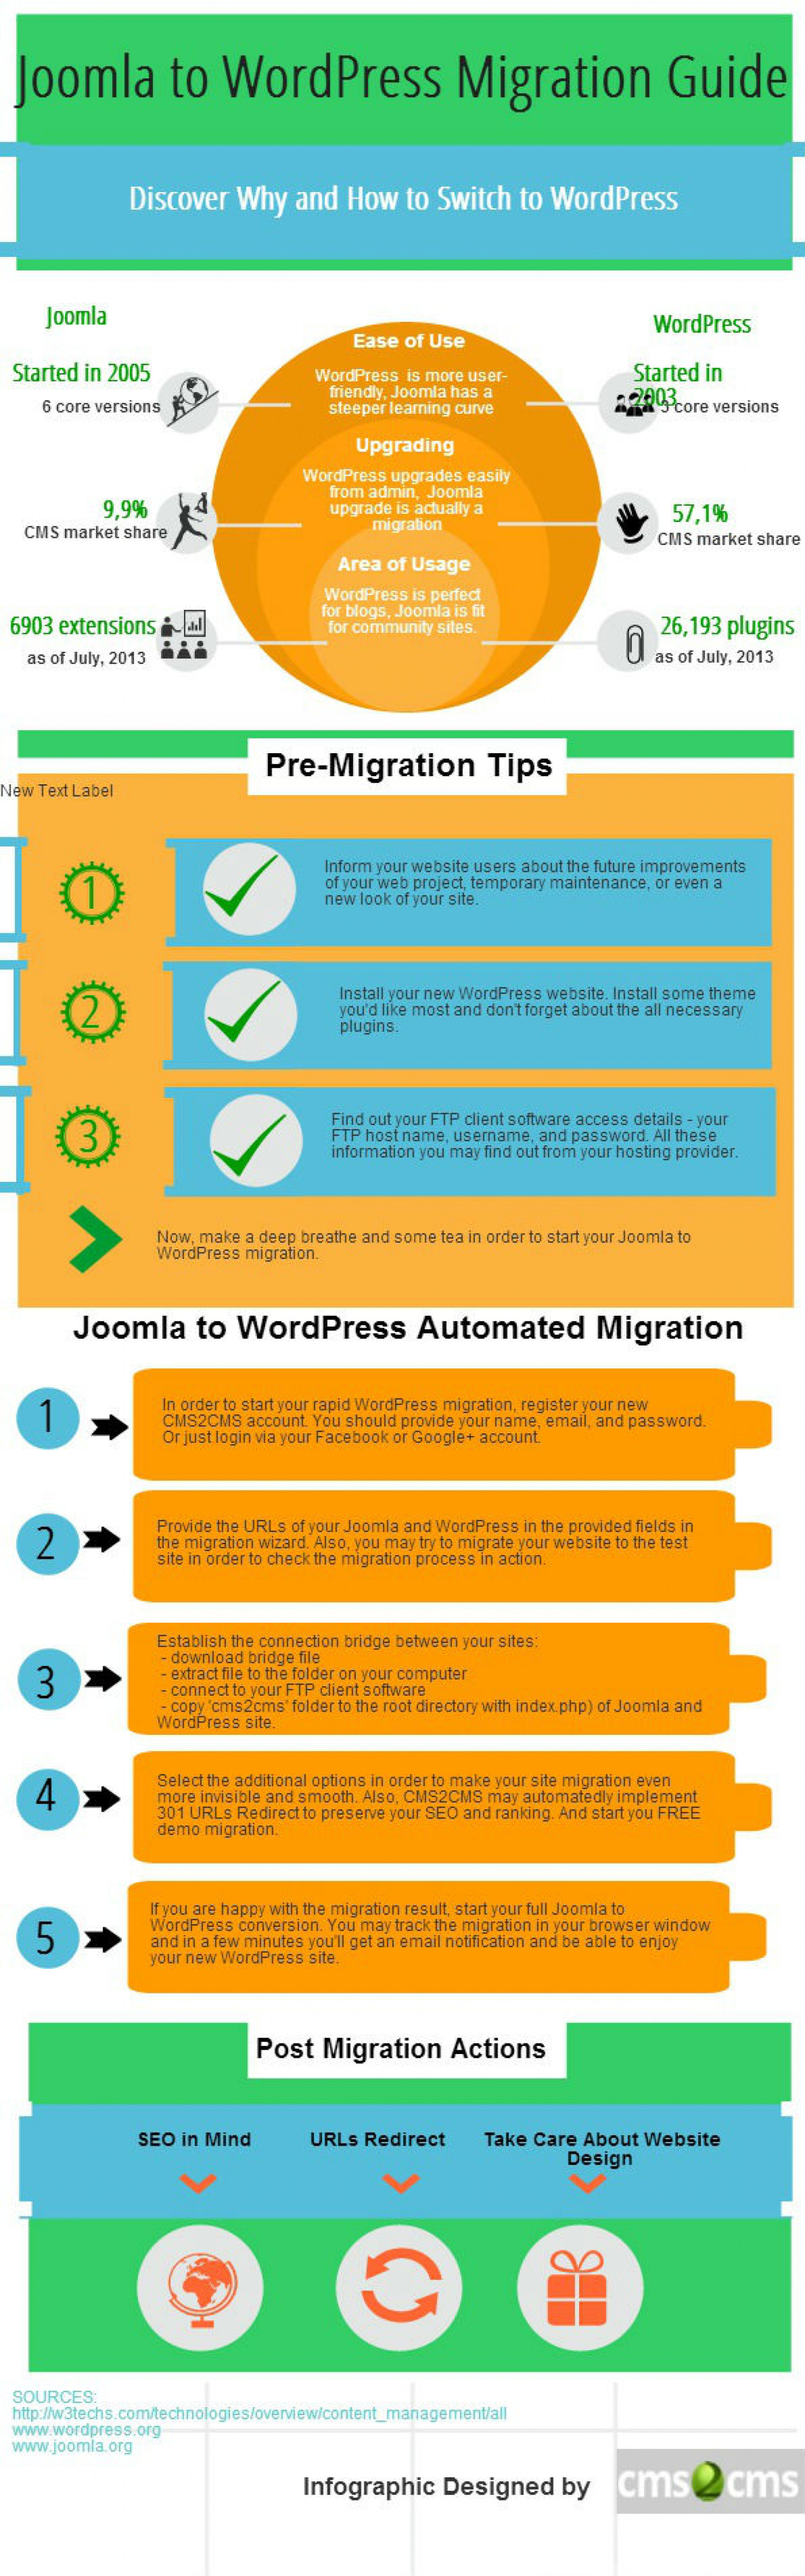 Joomla to WordPress Migration Guide Infographic